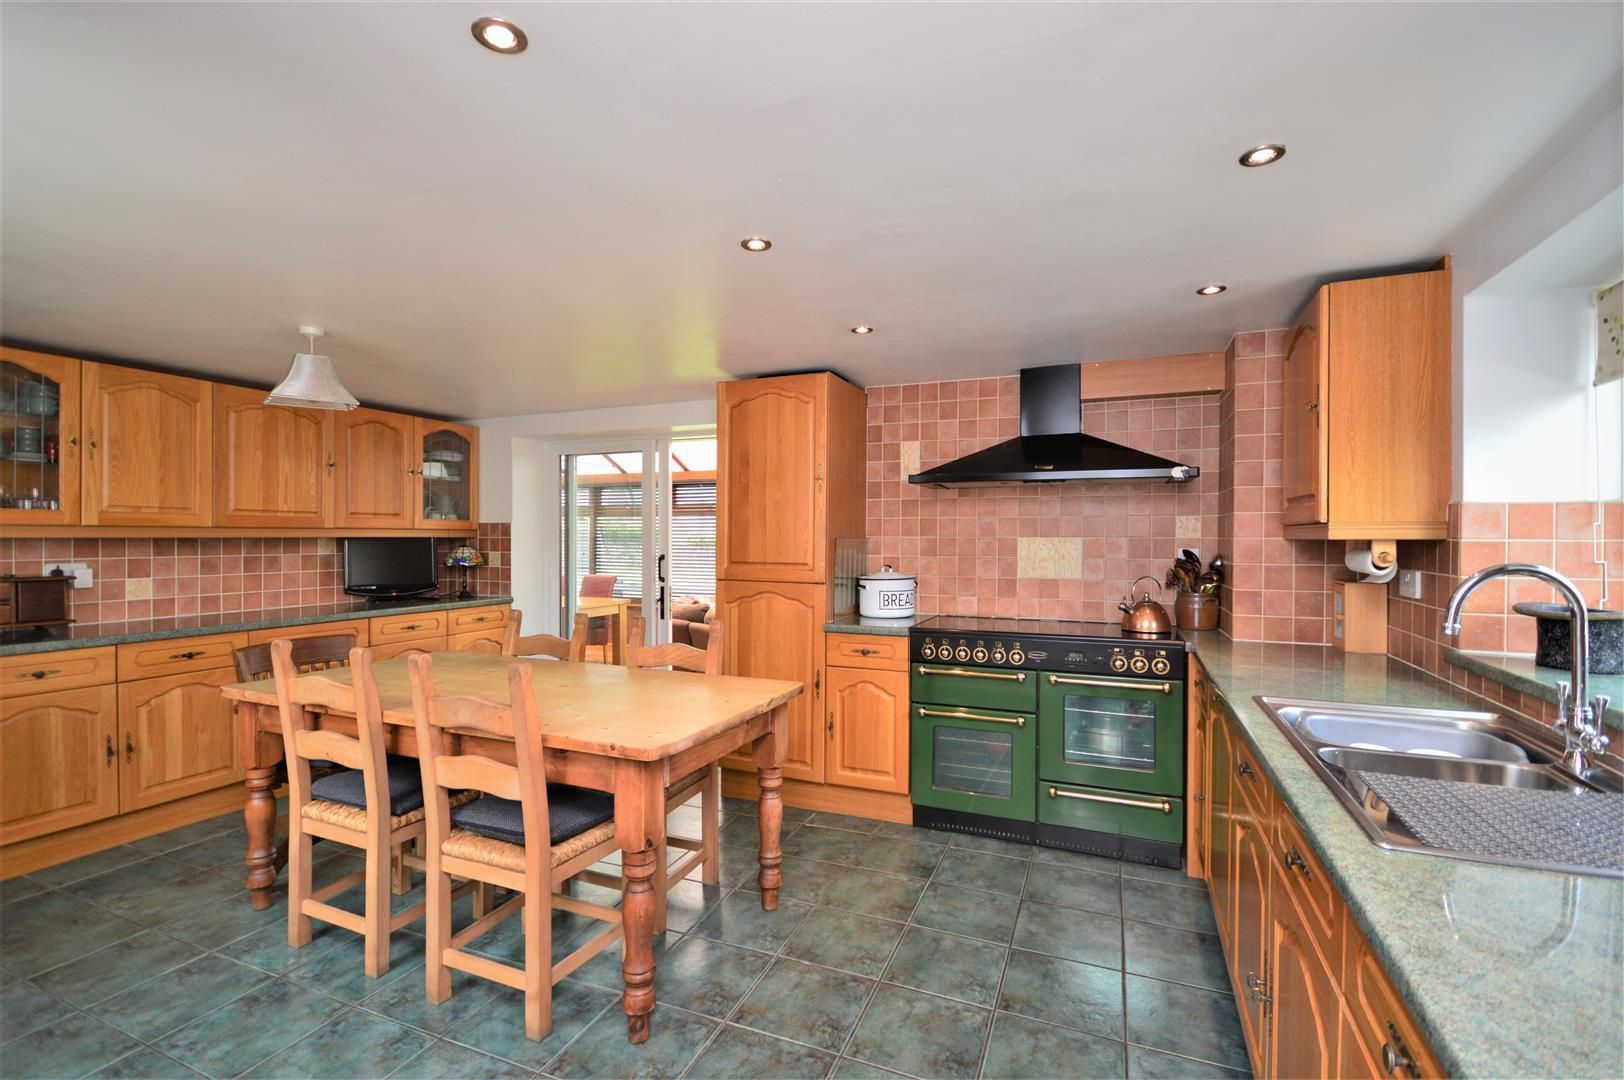 3 bed detached for sale in Orcop 5